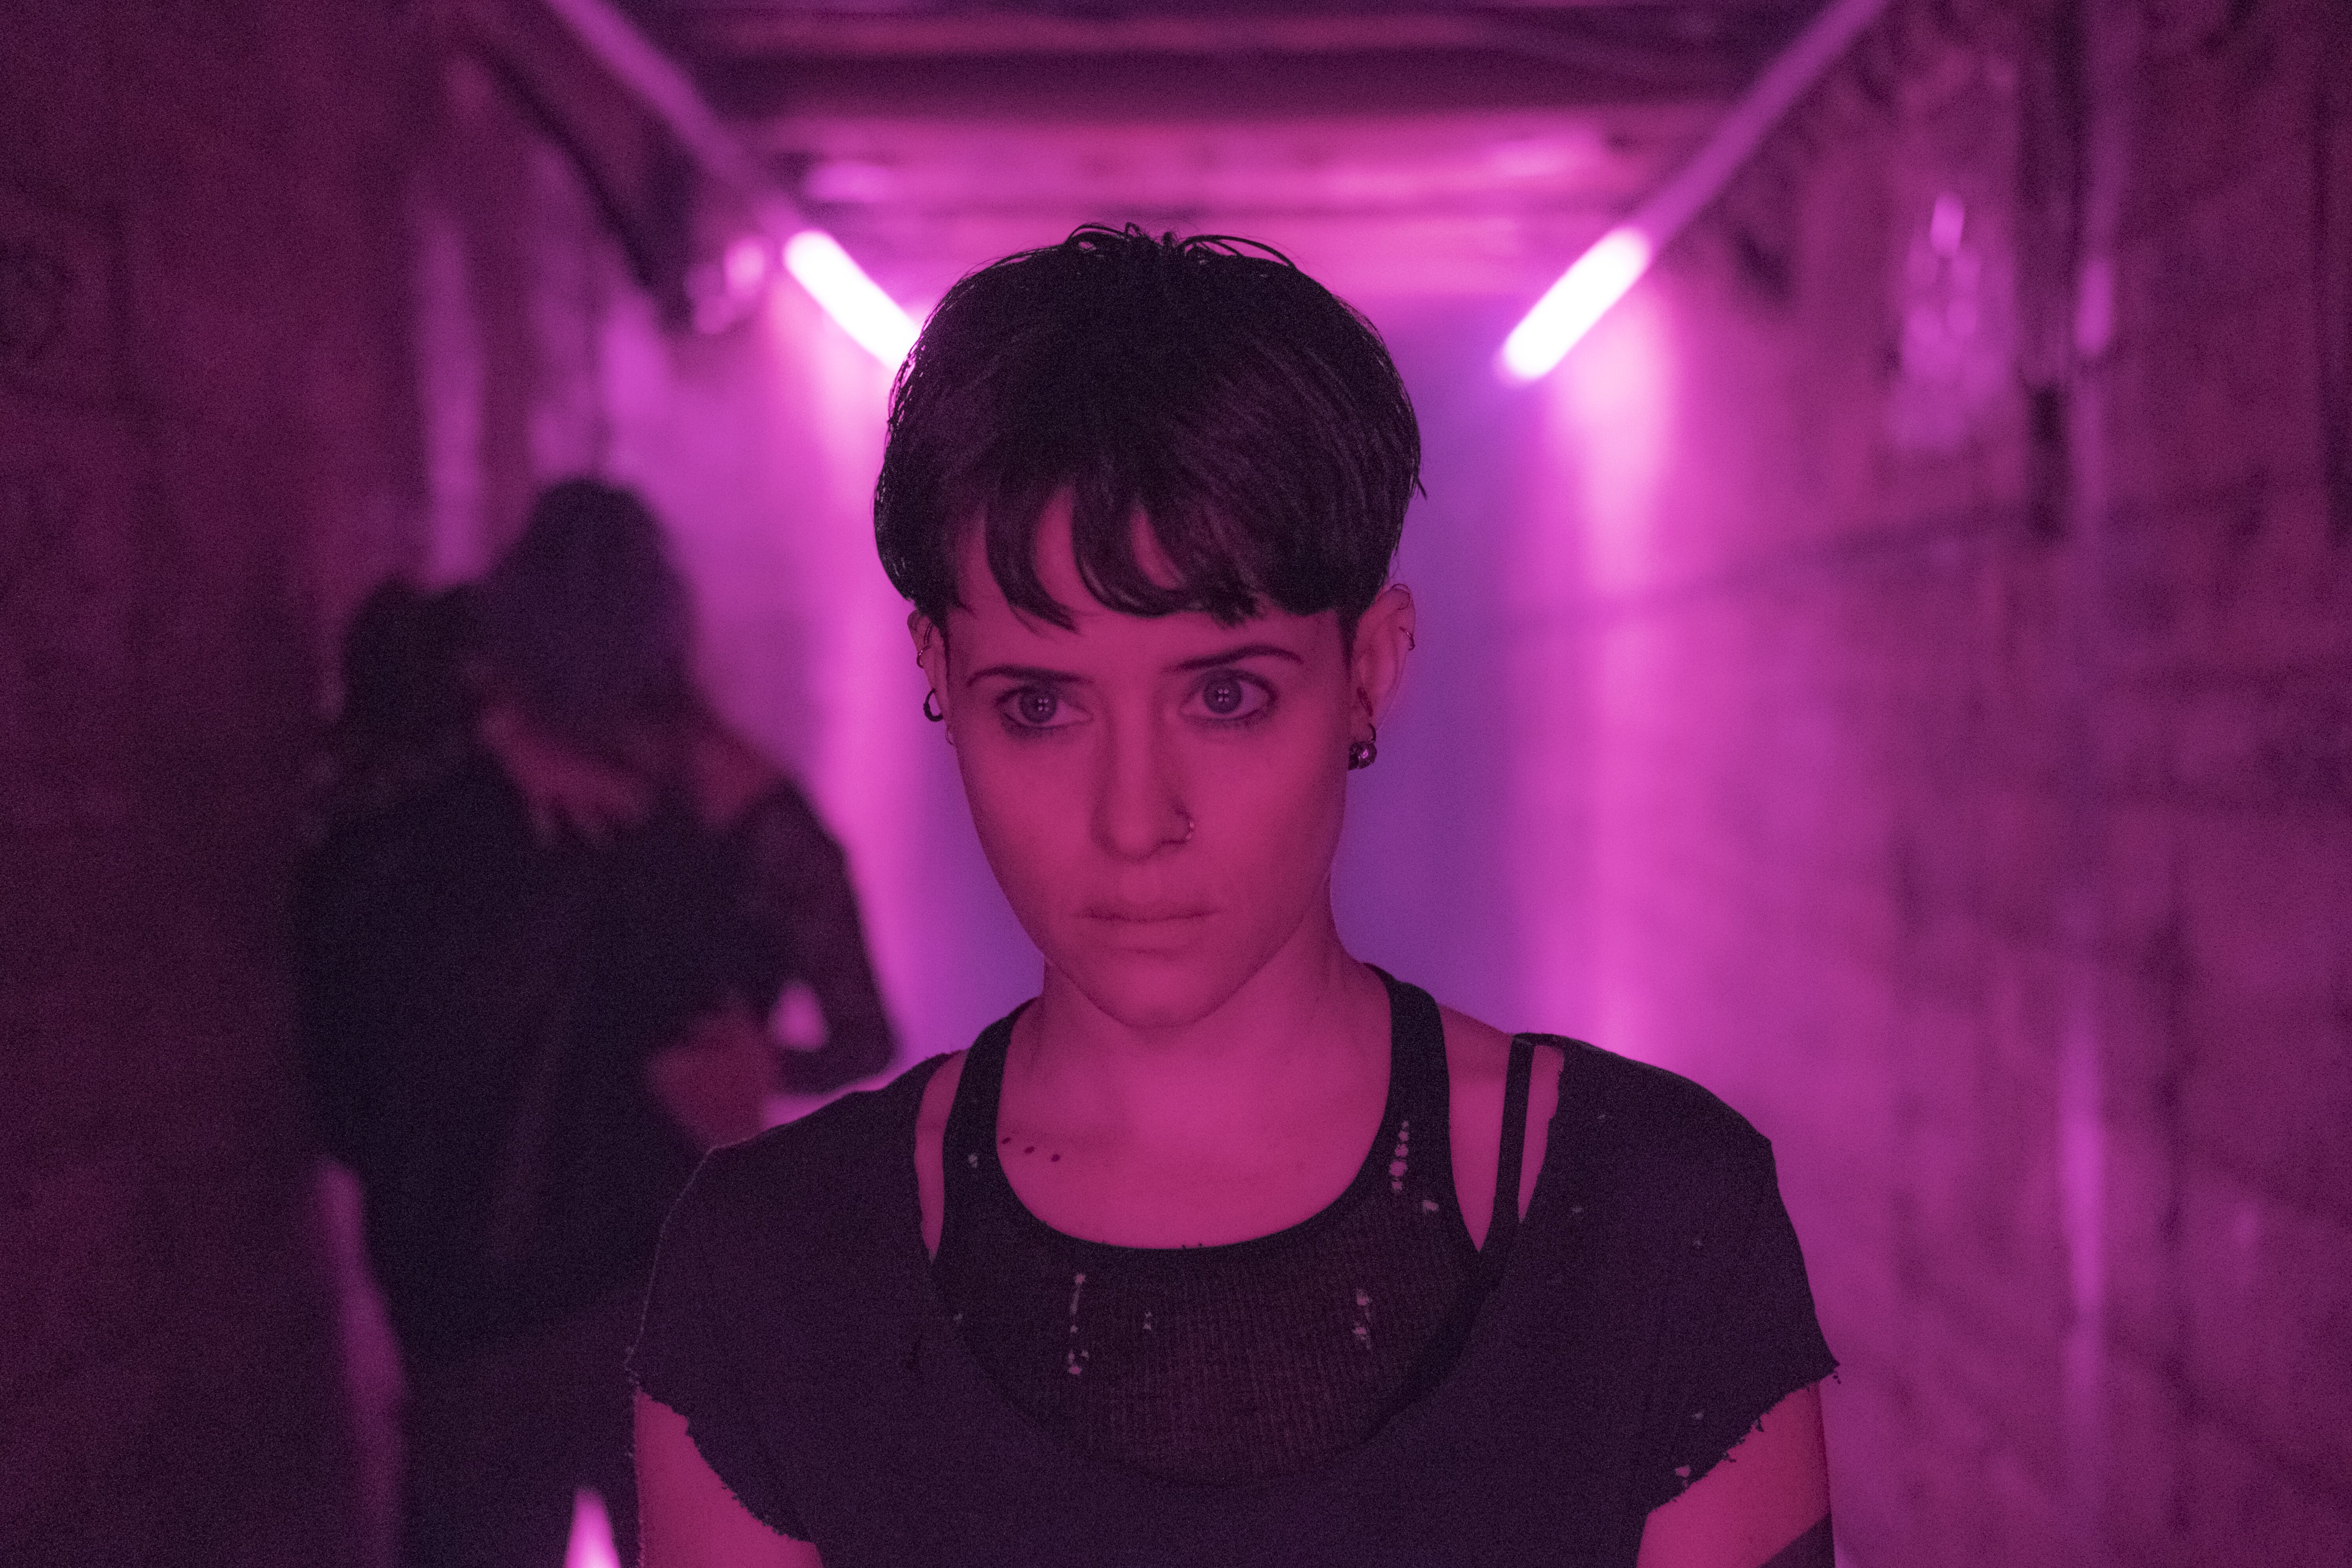 Blu-ray/DVD Review: THE GIRL IN THE SPIDER'S WEB (2018)